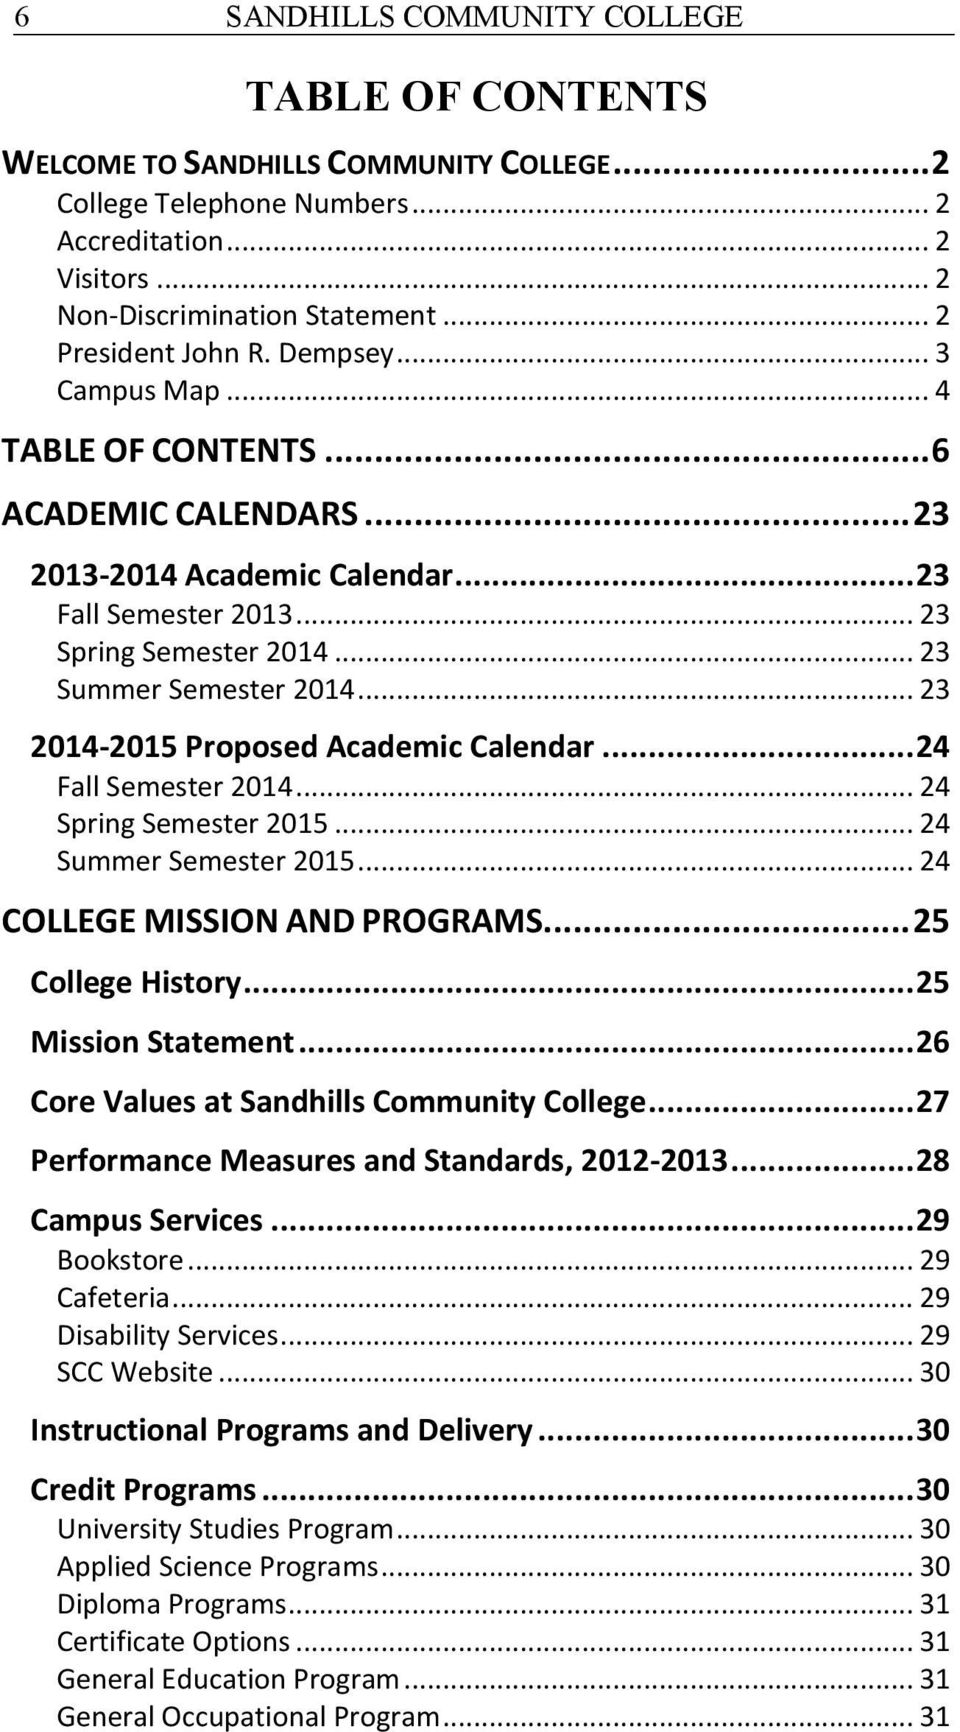 .. 23 Summer Semester 2014... 23 2014-2015 Proposed Academic Calendar... 24 Fall Semester 2014... 24 Spring Semester 2015... 24 Summer Semester 2015... 24 COLLEGE MISSION AND PROGRAMS.